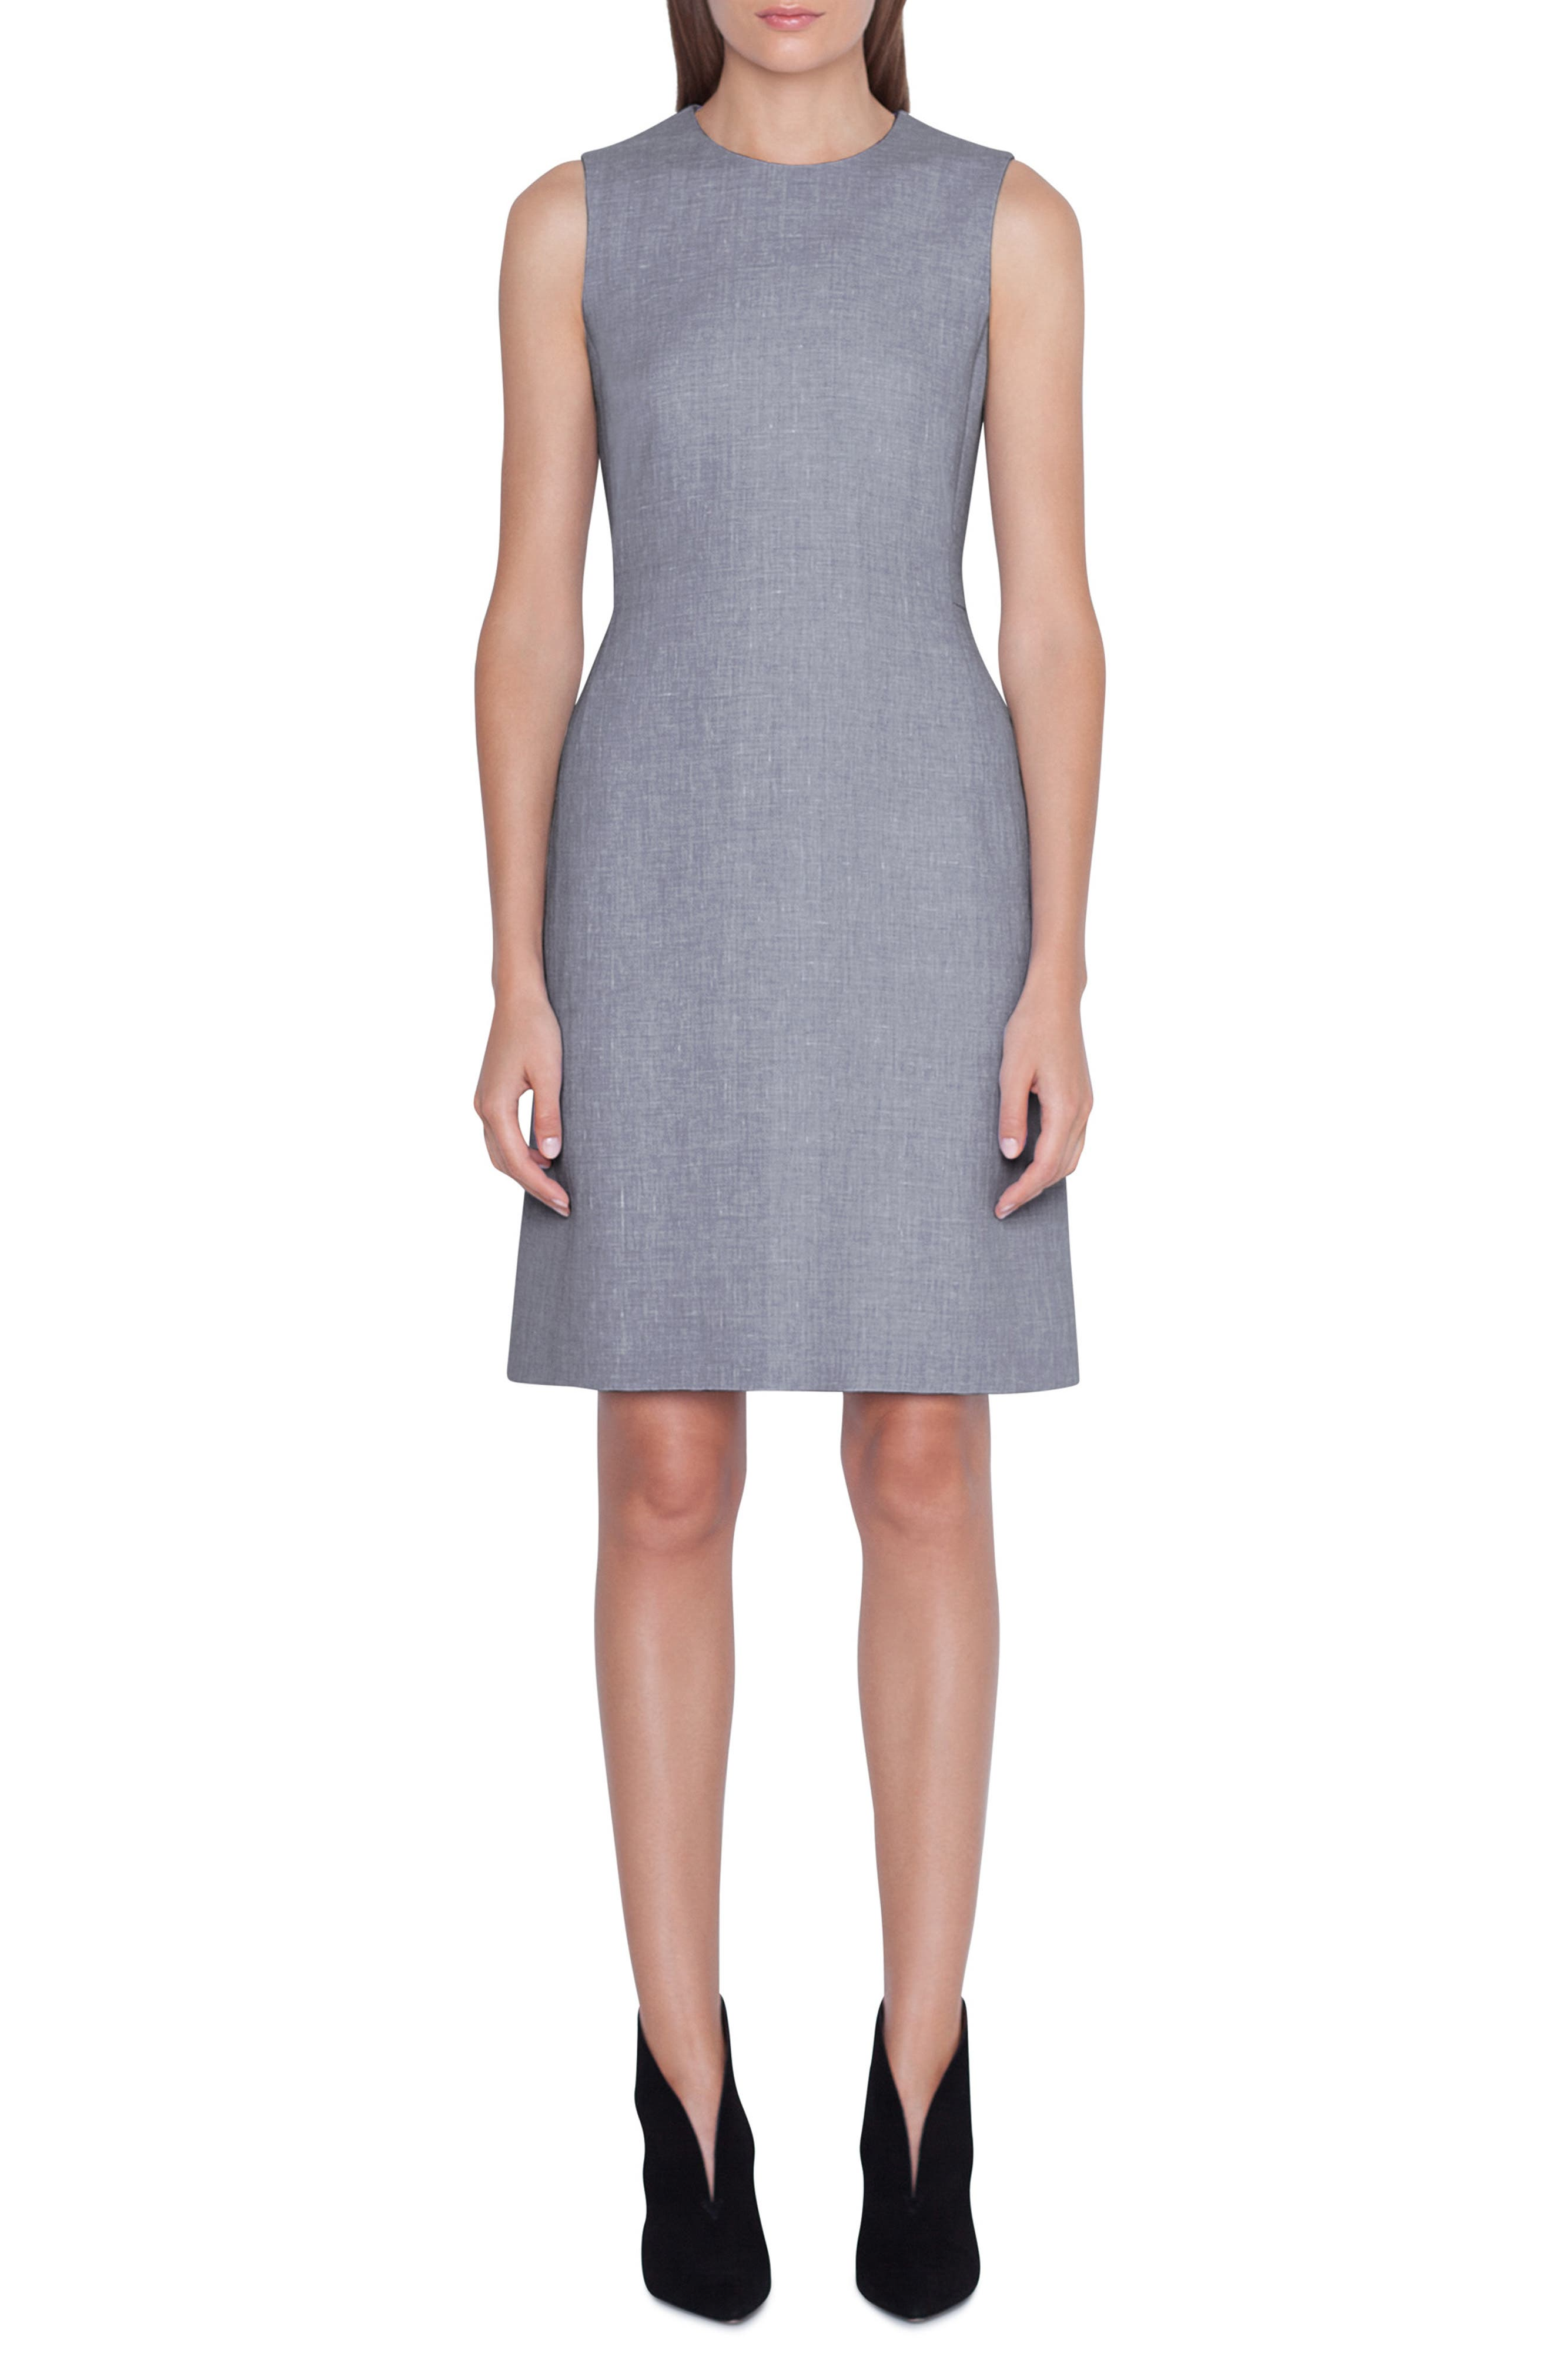 AKRIS,                             Linen & Wool Seamed Sheath Dress,                             Main thumbnail 1, color,                             TITAN